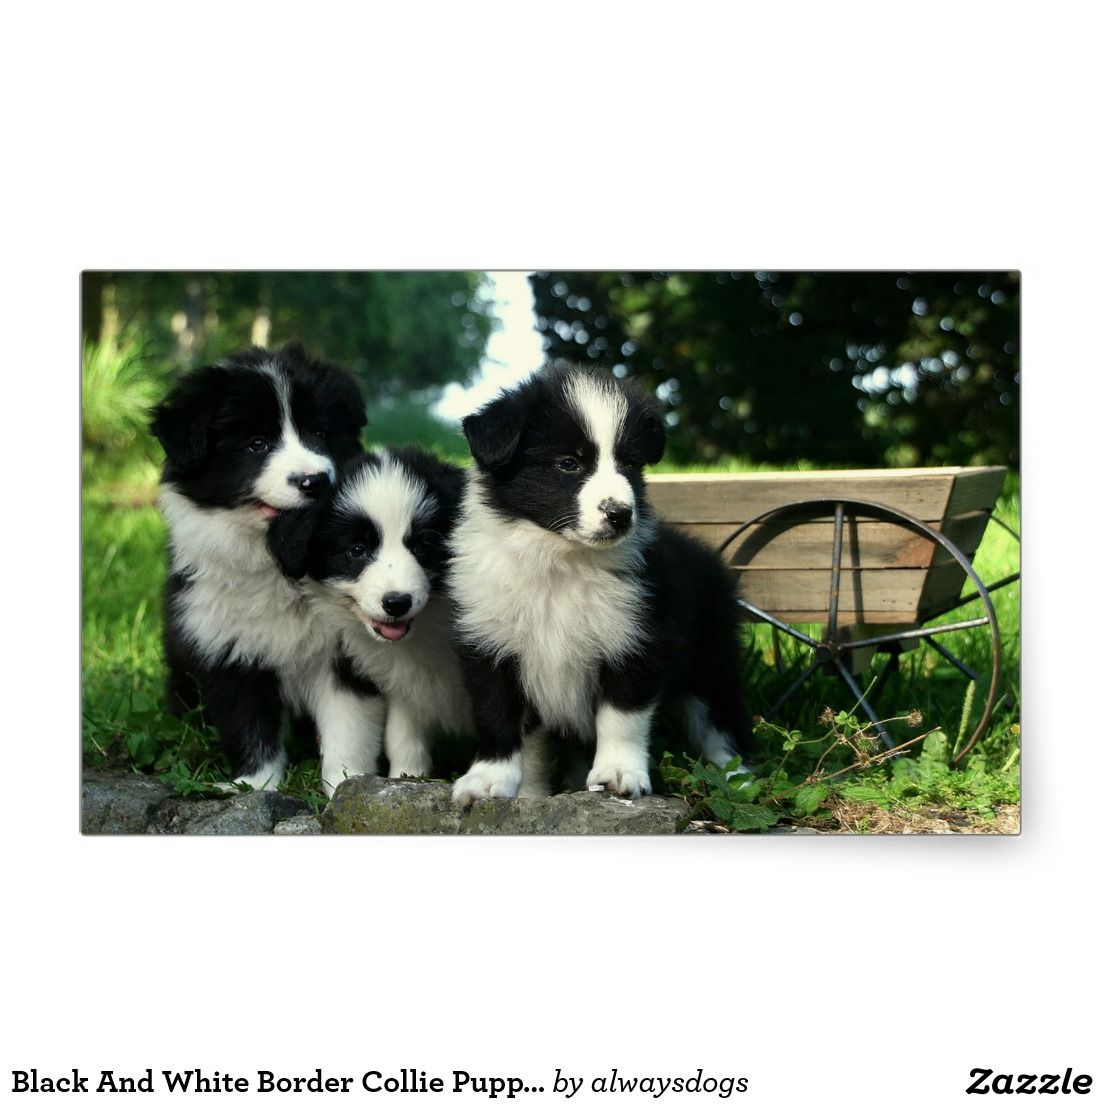 Black And White Border Collie Puppy Dogs Stickers Zazzle Com